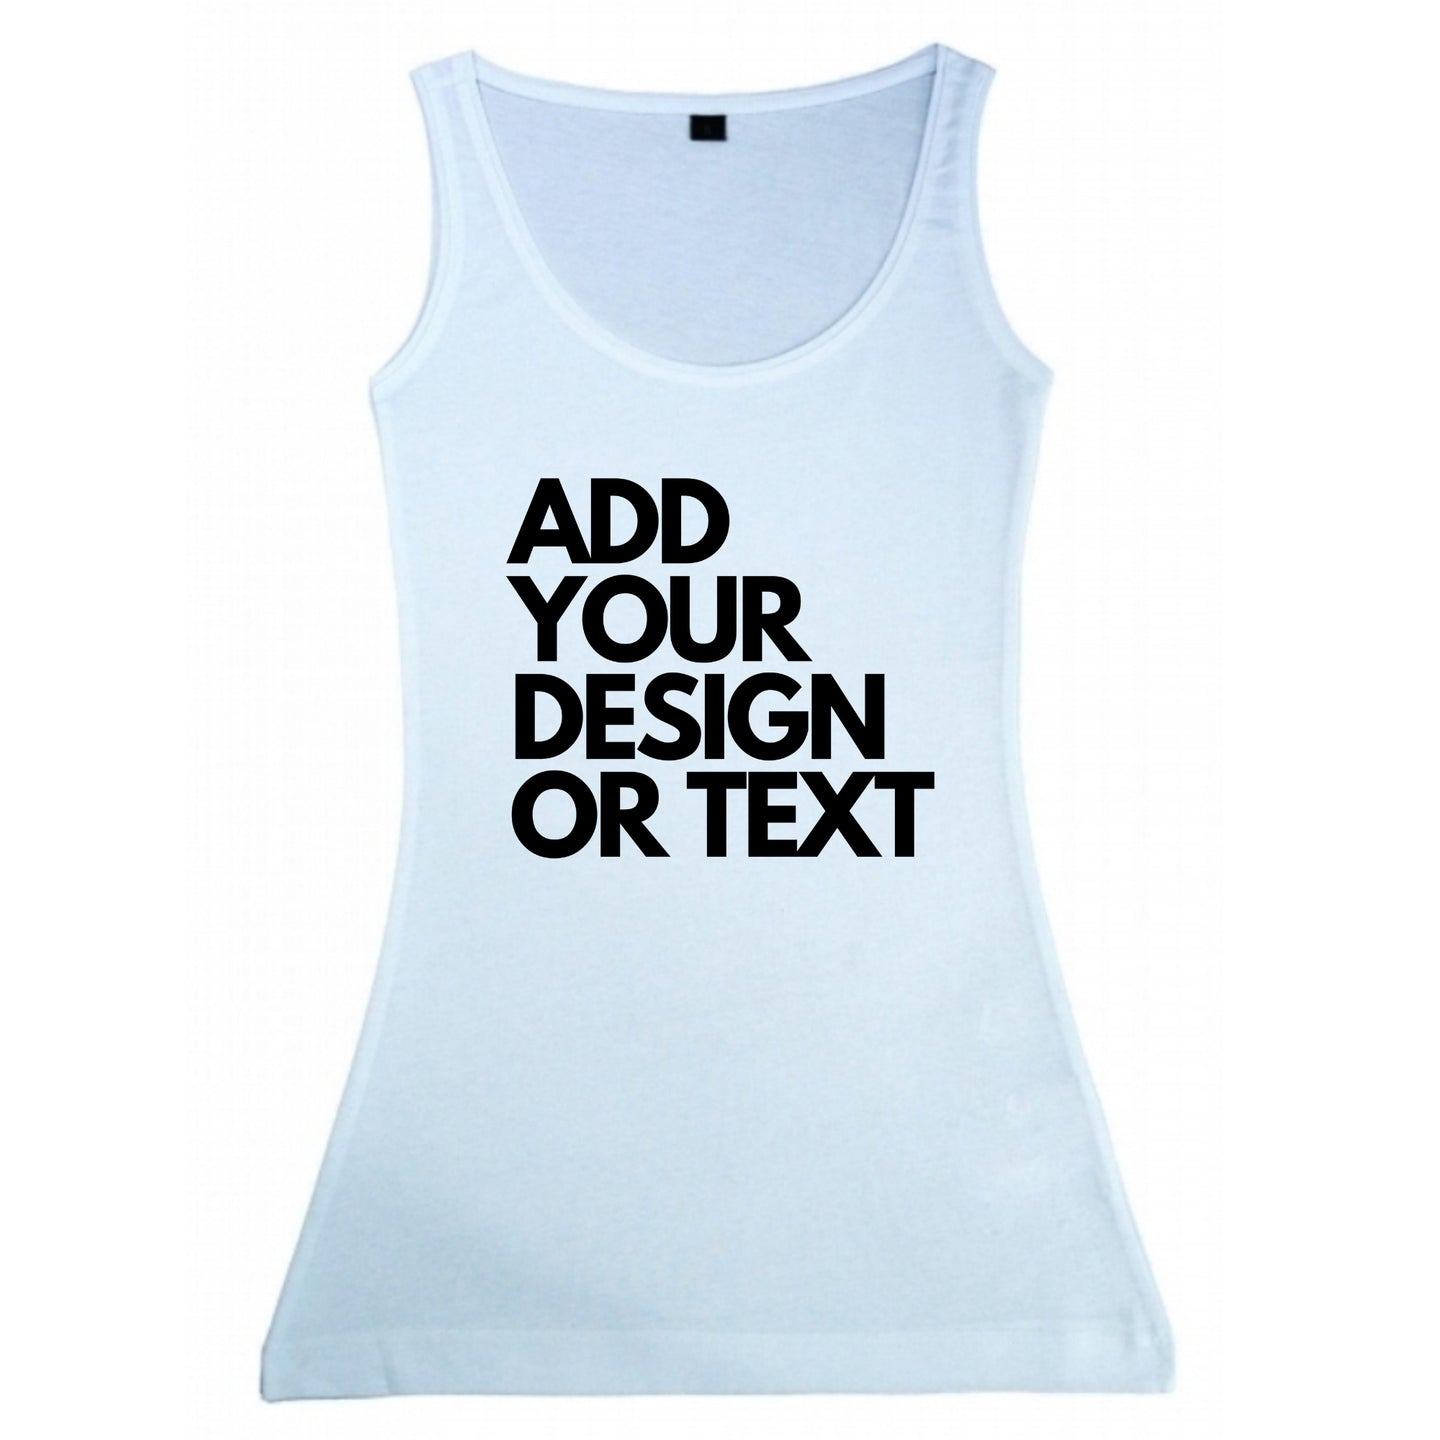 Women's Add Your Design Or Text Personalise Slogan Tank Top Vest